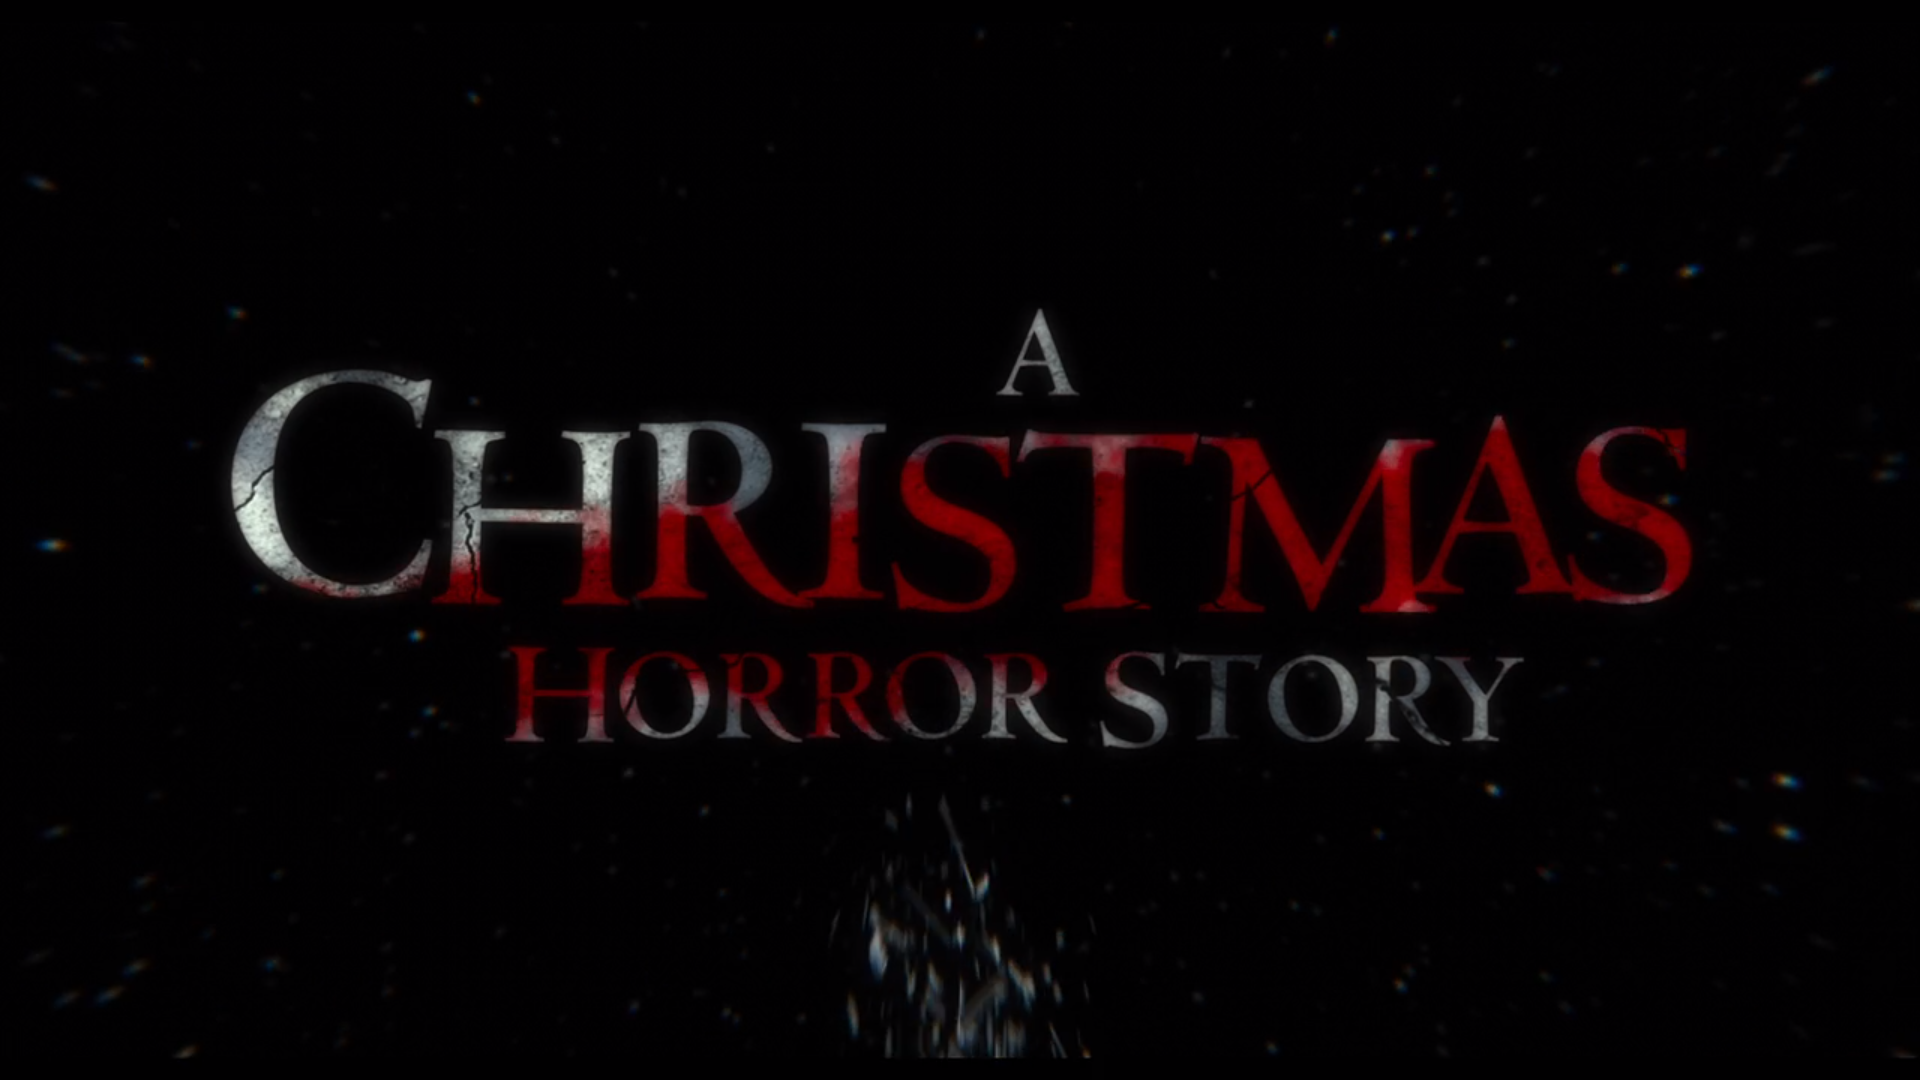 A Christmas Horror Story 2015.Wicked Wednesday A Christmas Horror Story 2015 American